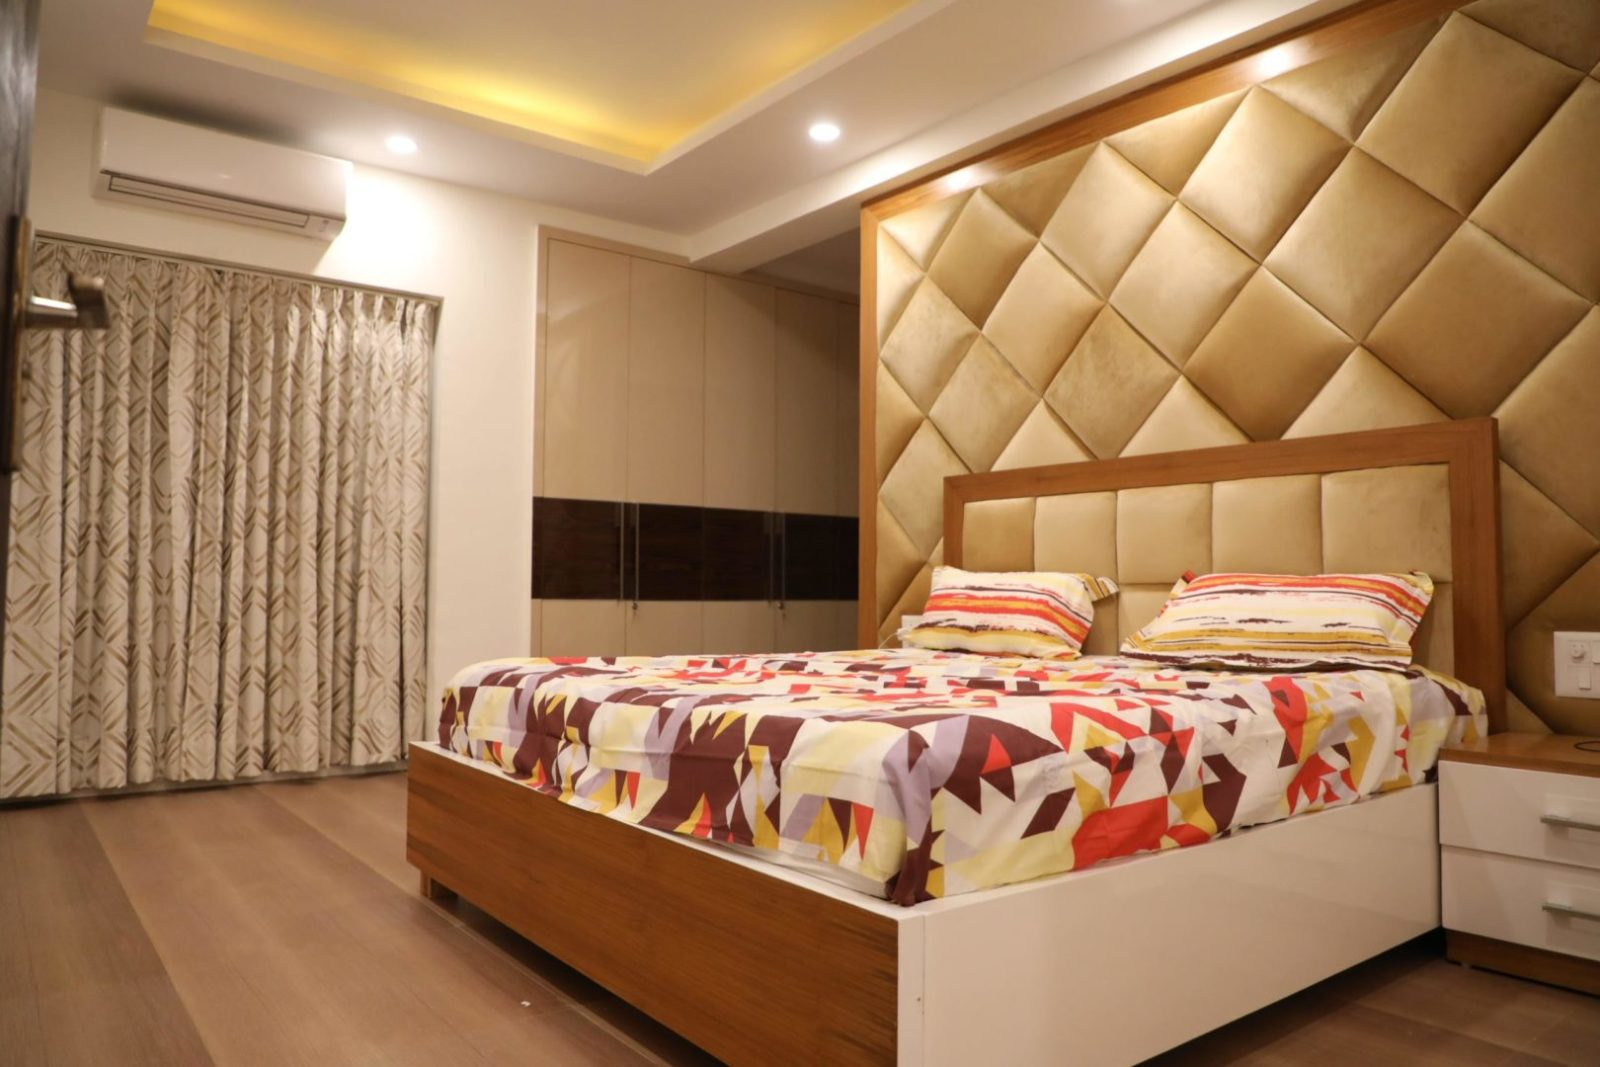 Royal Park, Sector 137, Noida